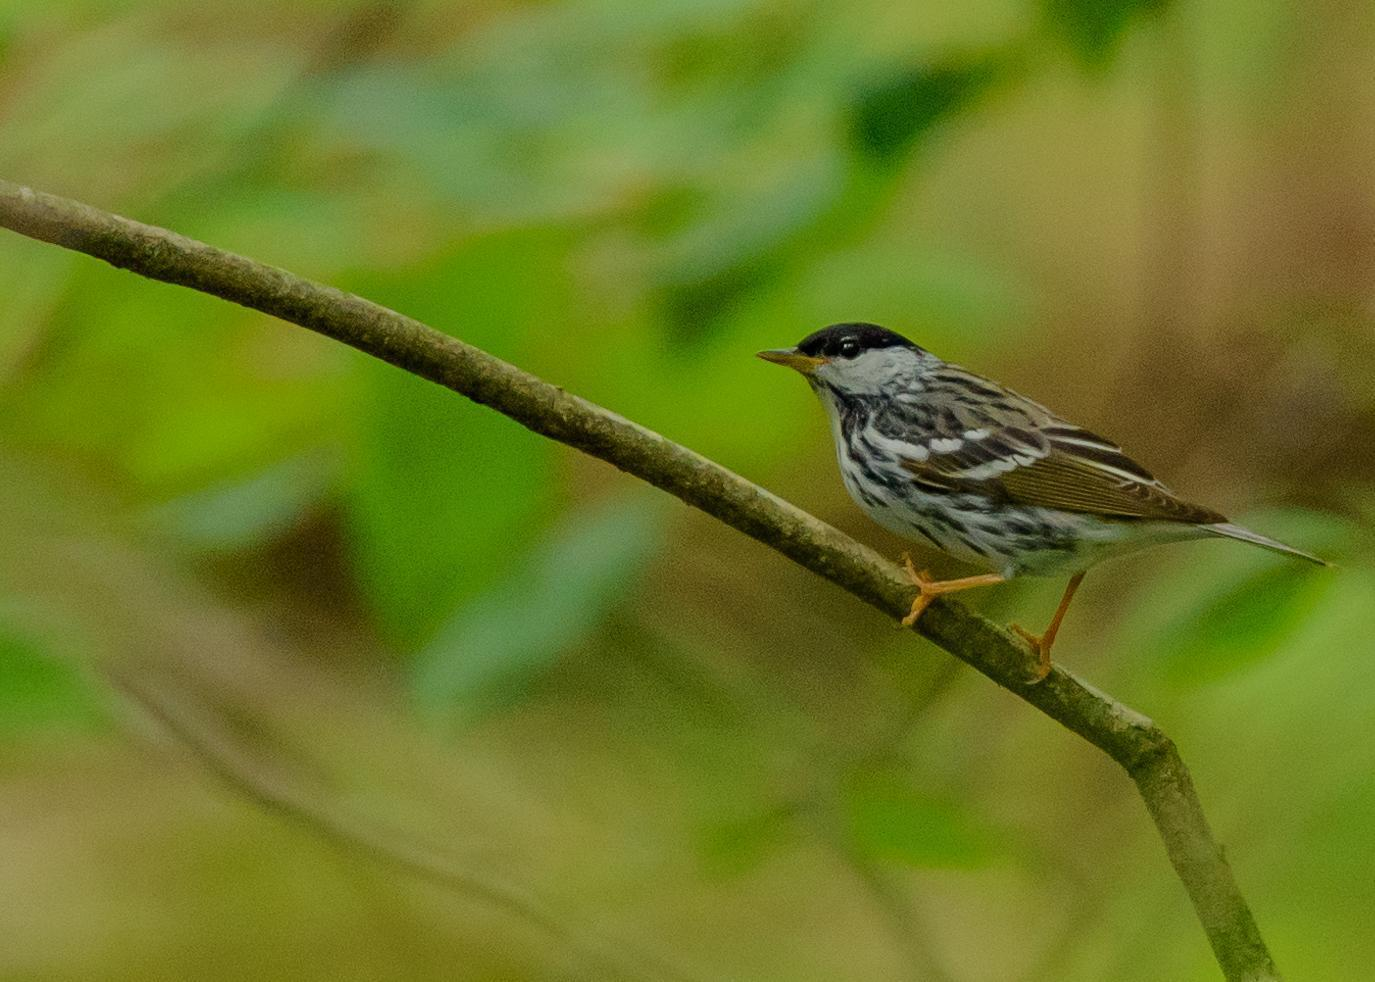 Blackpoll Warbler Photo by Keshava Mysore